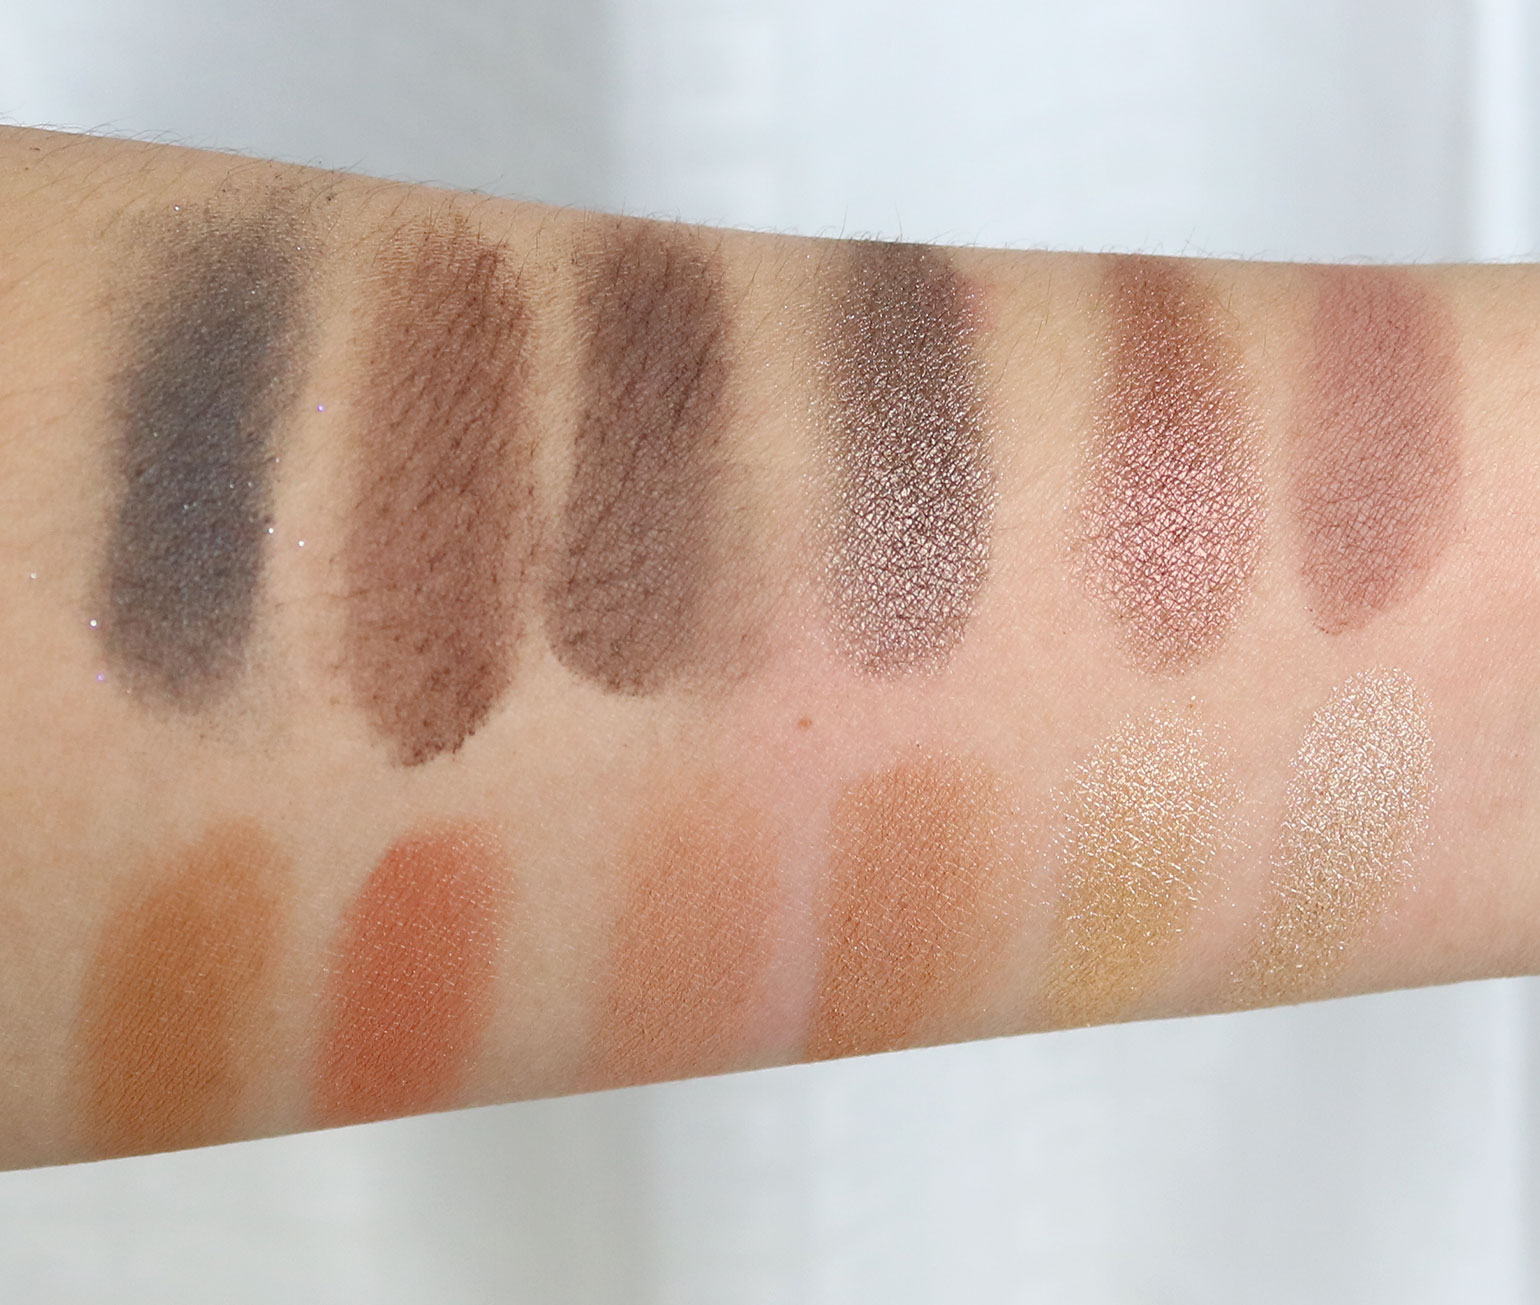 11 Pixibeauty - Pixi by Petra - ItsJudyTime Palettes Review Swatches - Gen-zel.com